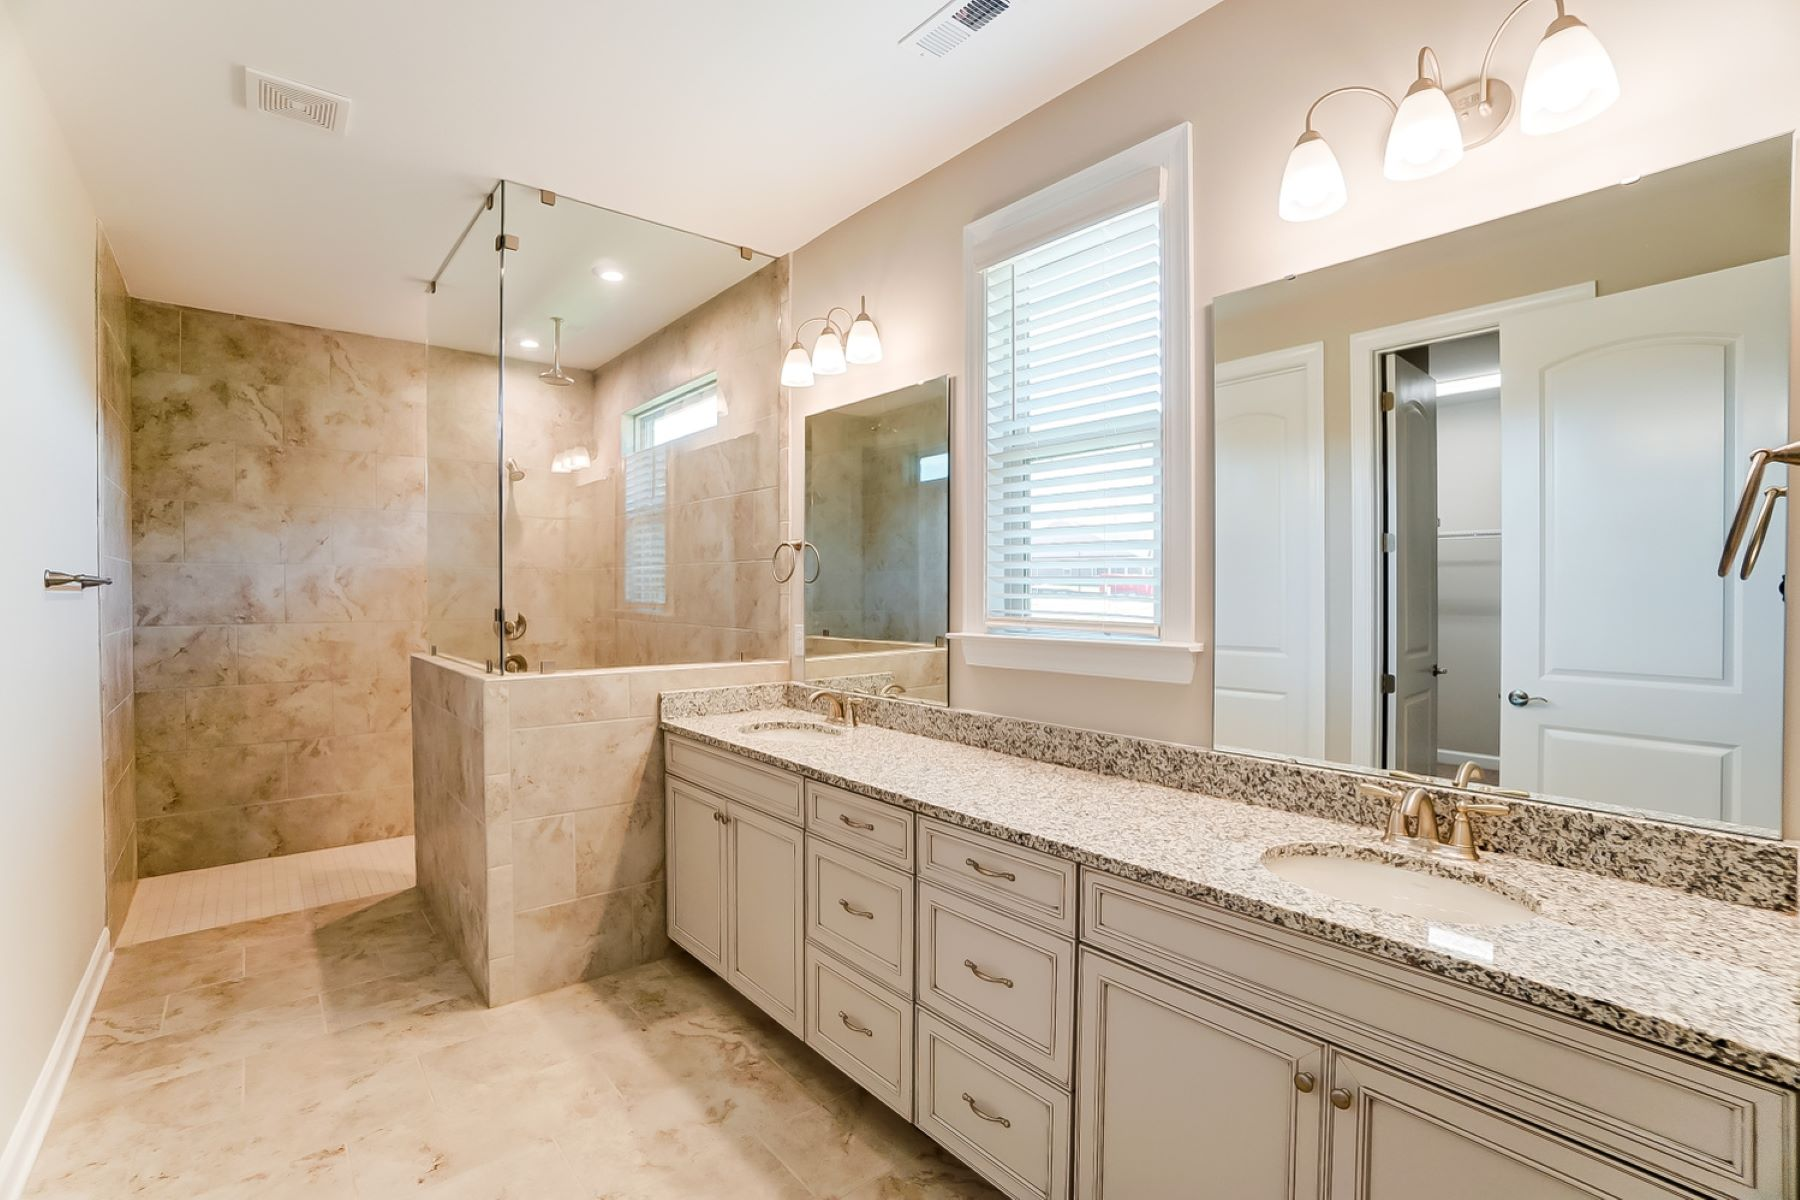 Presley Plan Bathroom_Master Bath at Sonata at Mint Hill in Mint Hill North Carolina by Mattamy Homes